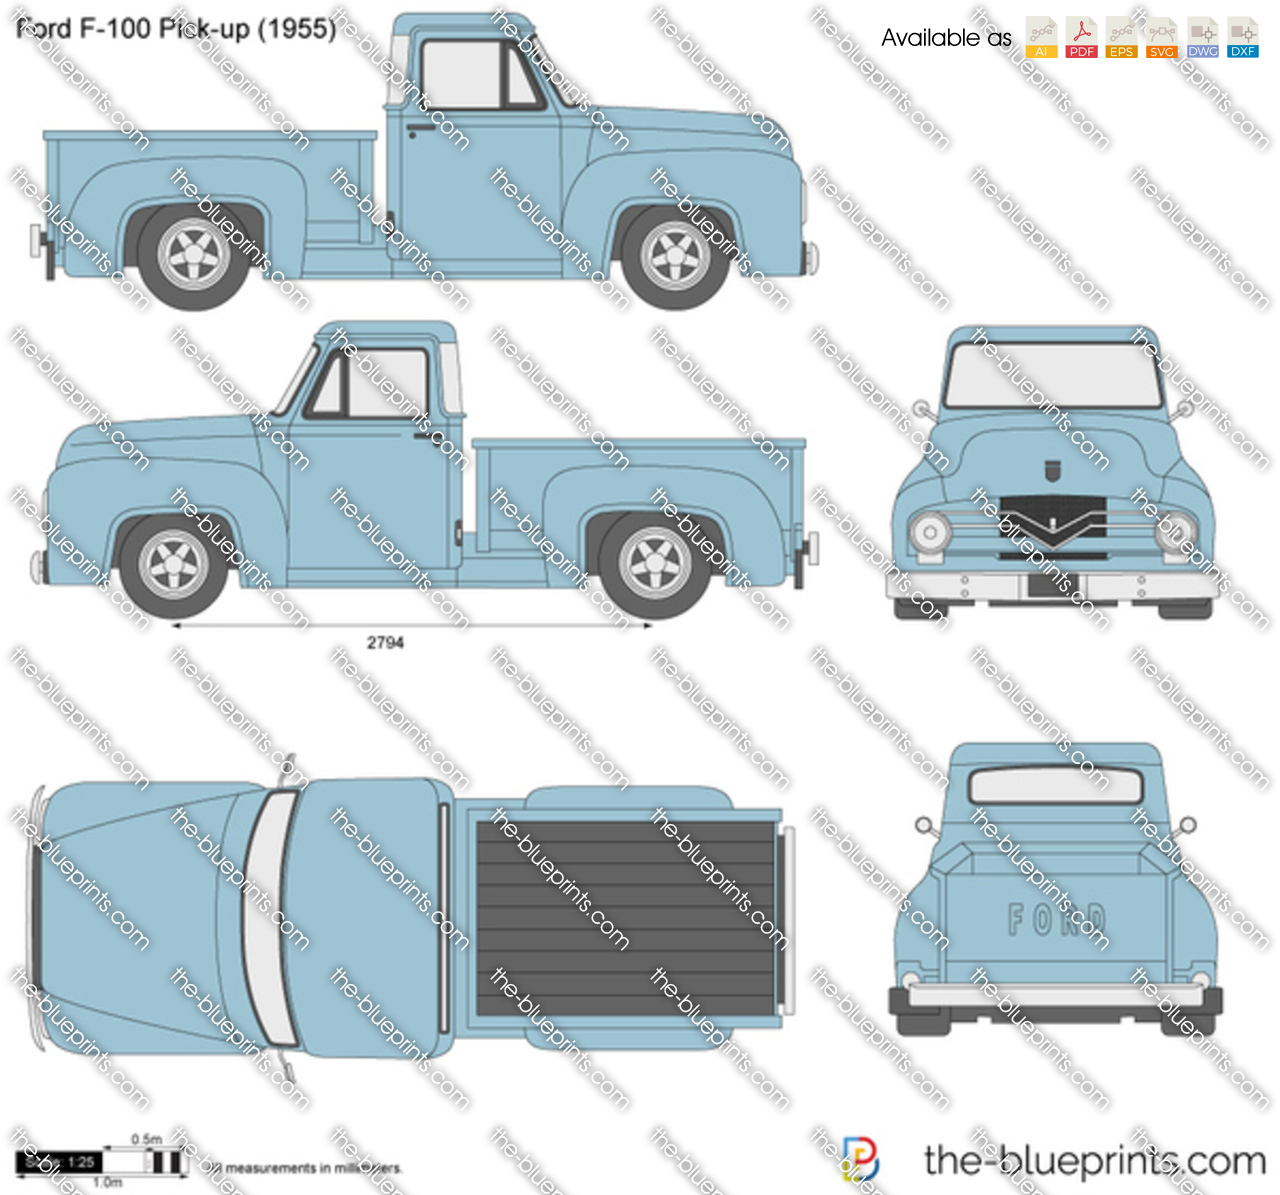 ford_f-100_pick-up_1955.jpg